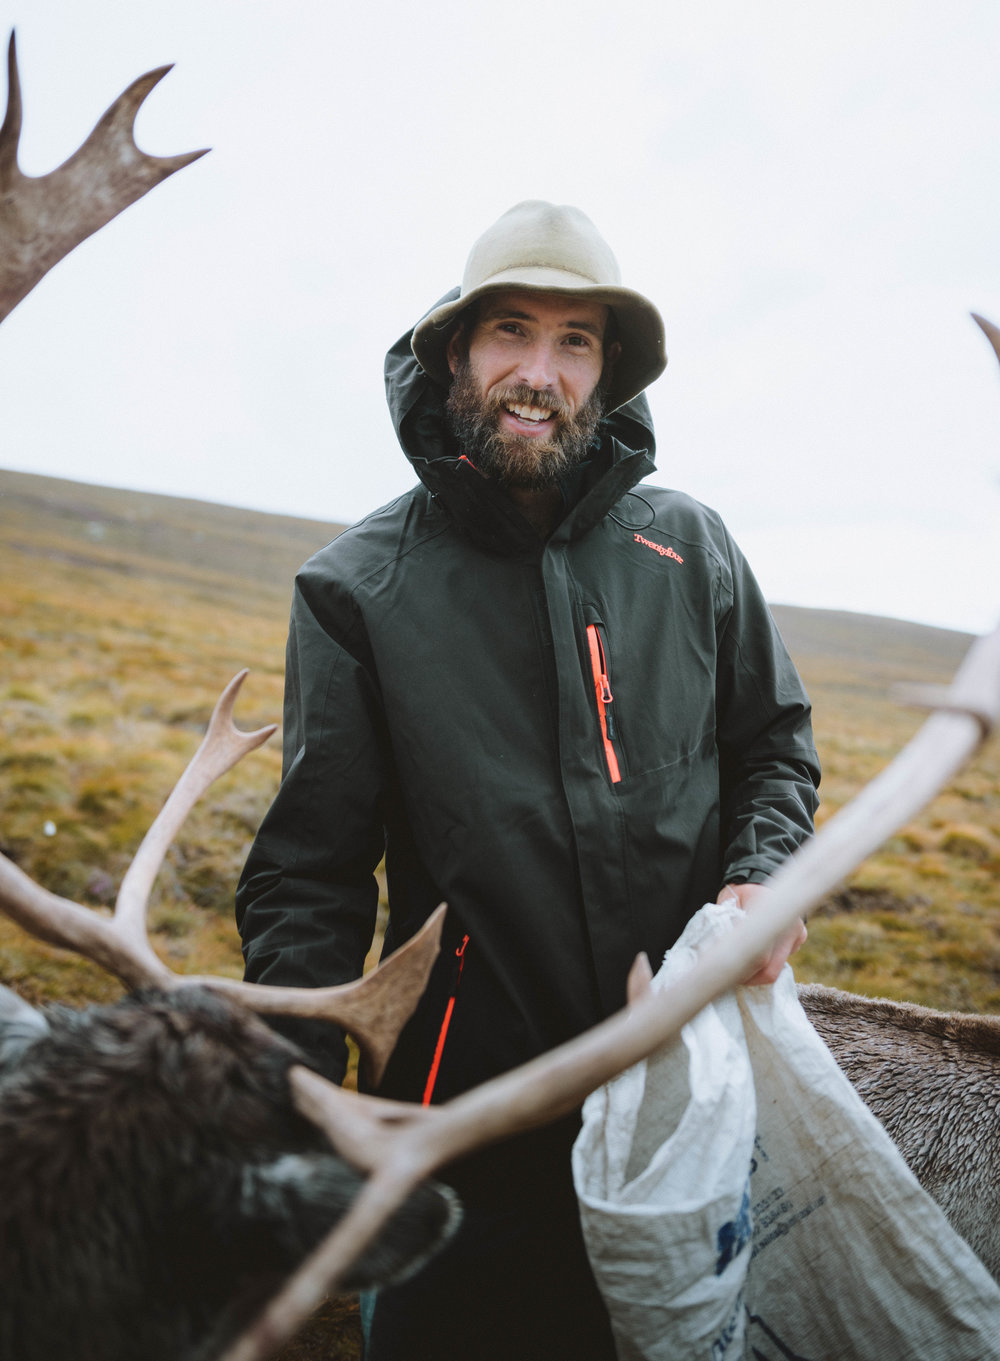 This is Dave our reindeer guide.